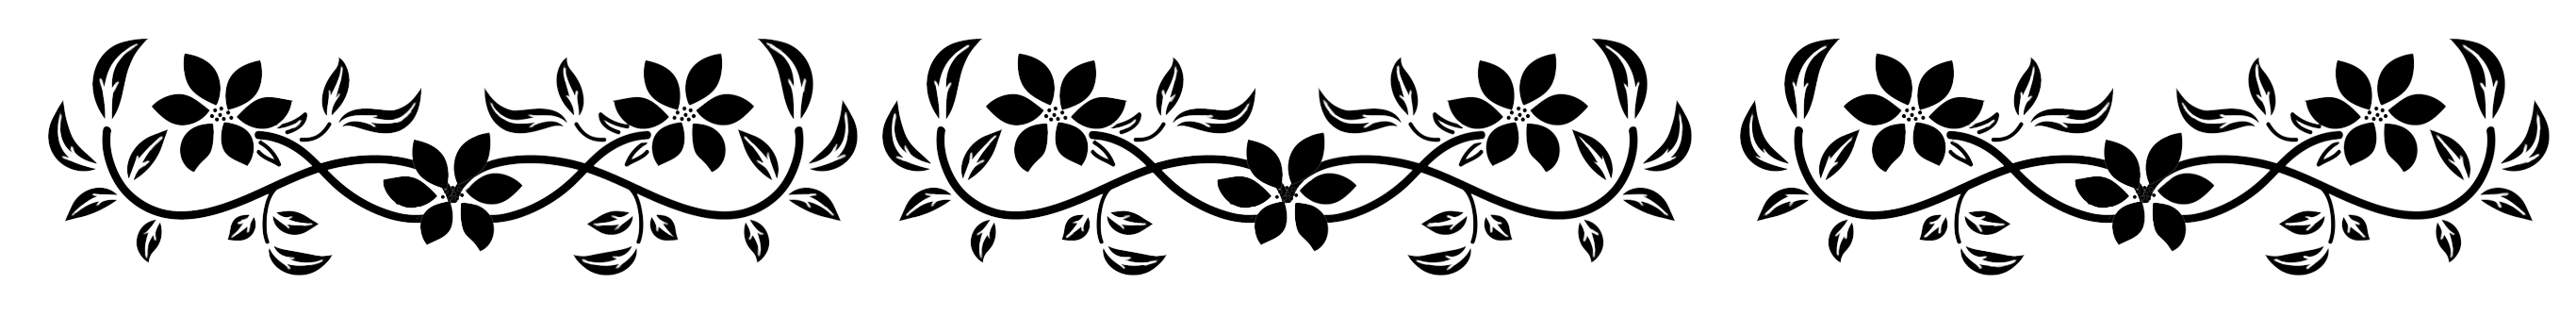 Flower border black and white png. Borders frames a